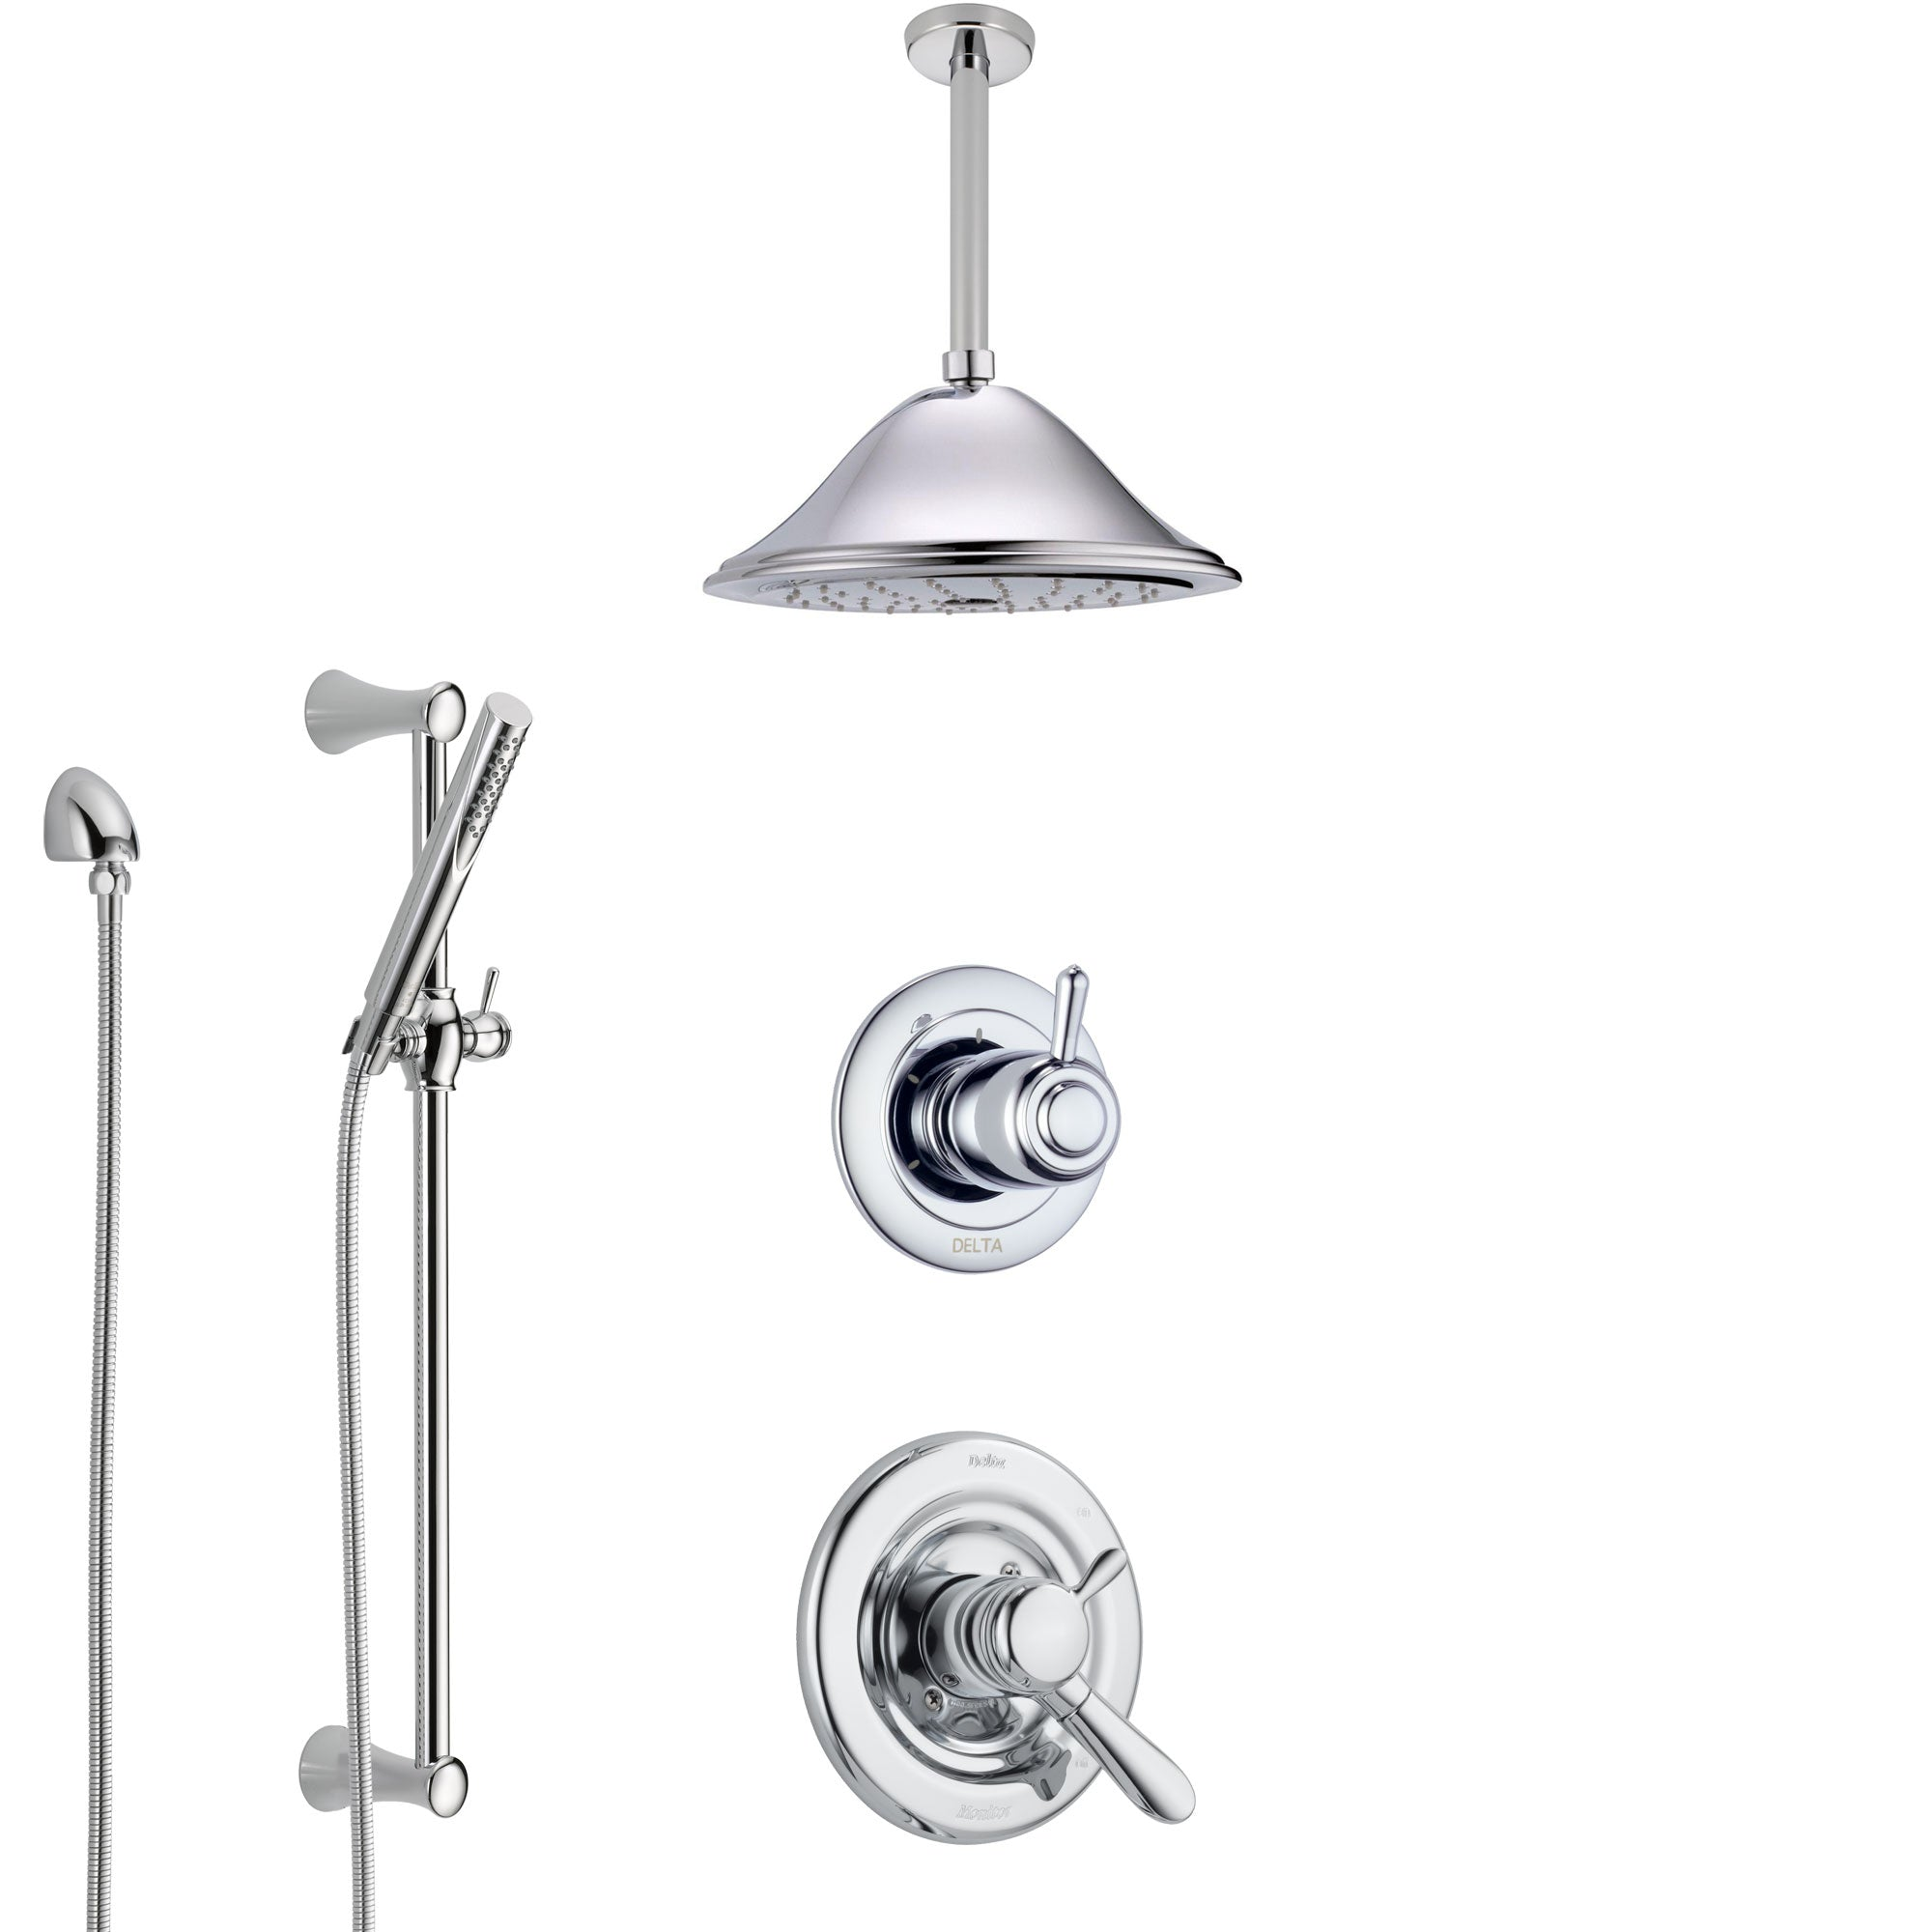 Delta Lahara Chrome Finish Shower System with Dual Control Handle, 3-Setting Diverter, Ceiling Mount Showerhead, and Hand Shower with Slidebar SS17385